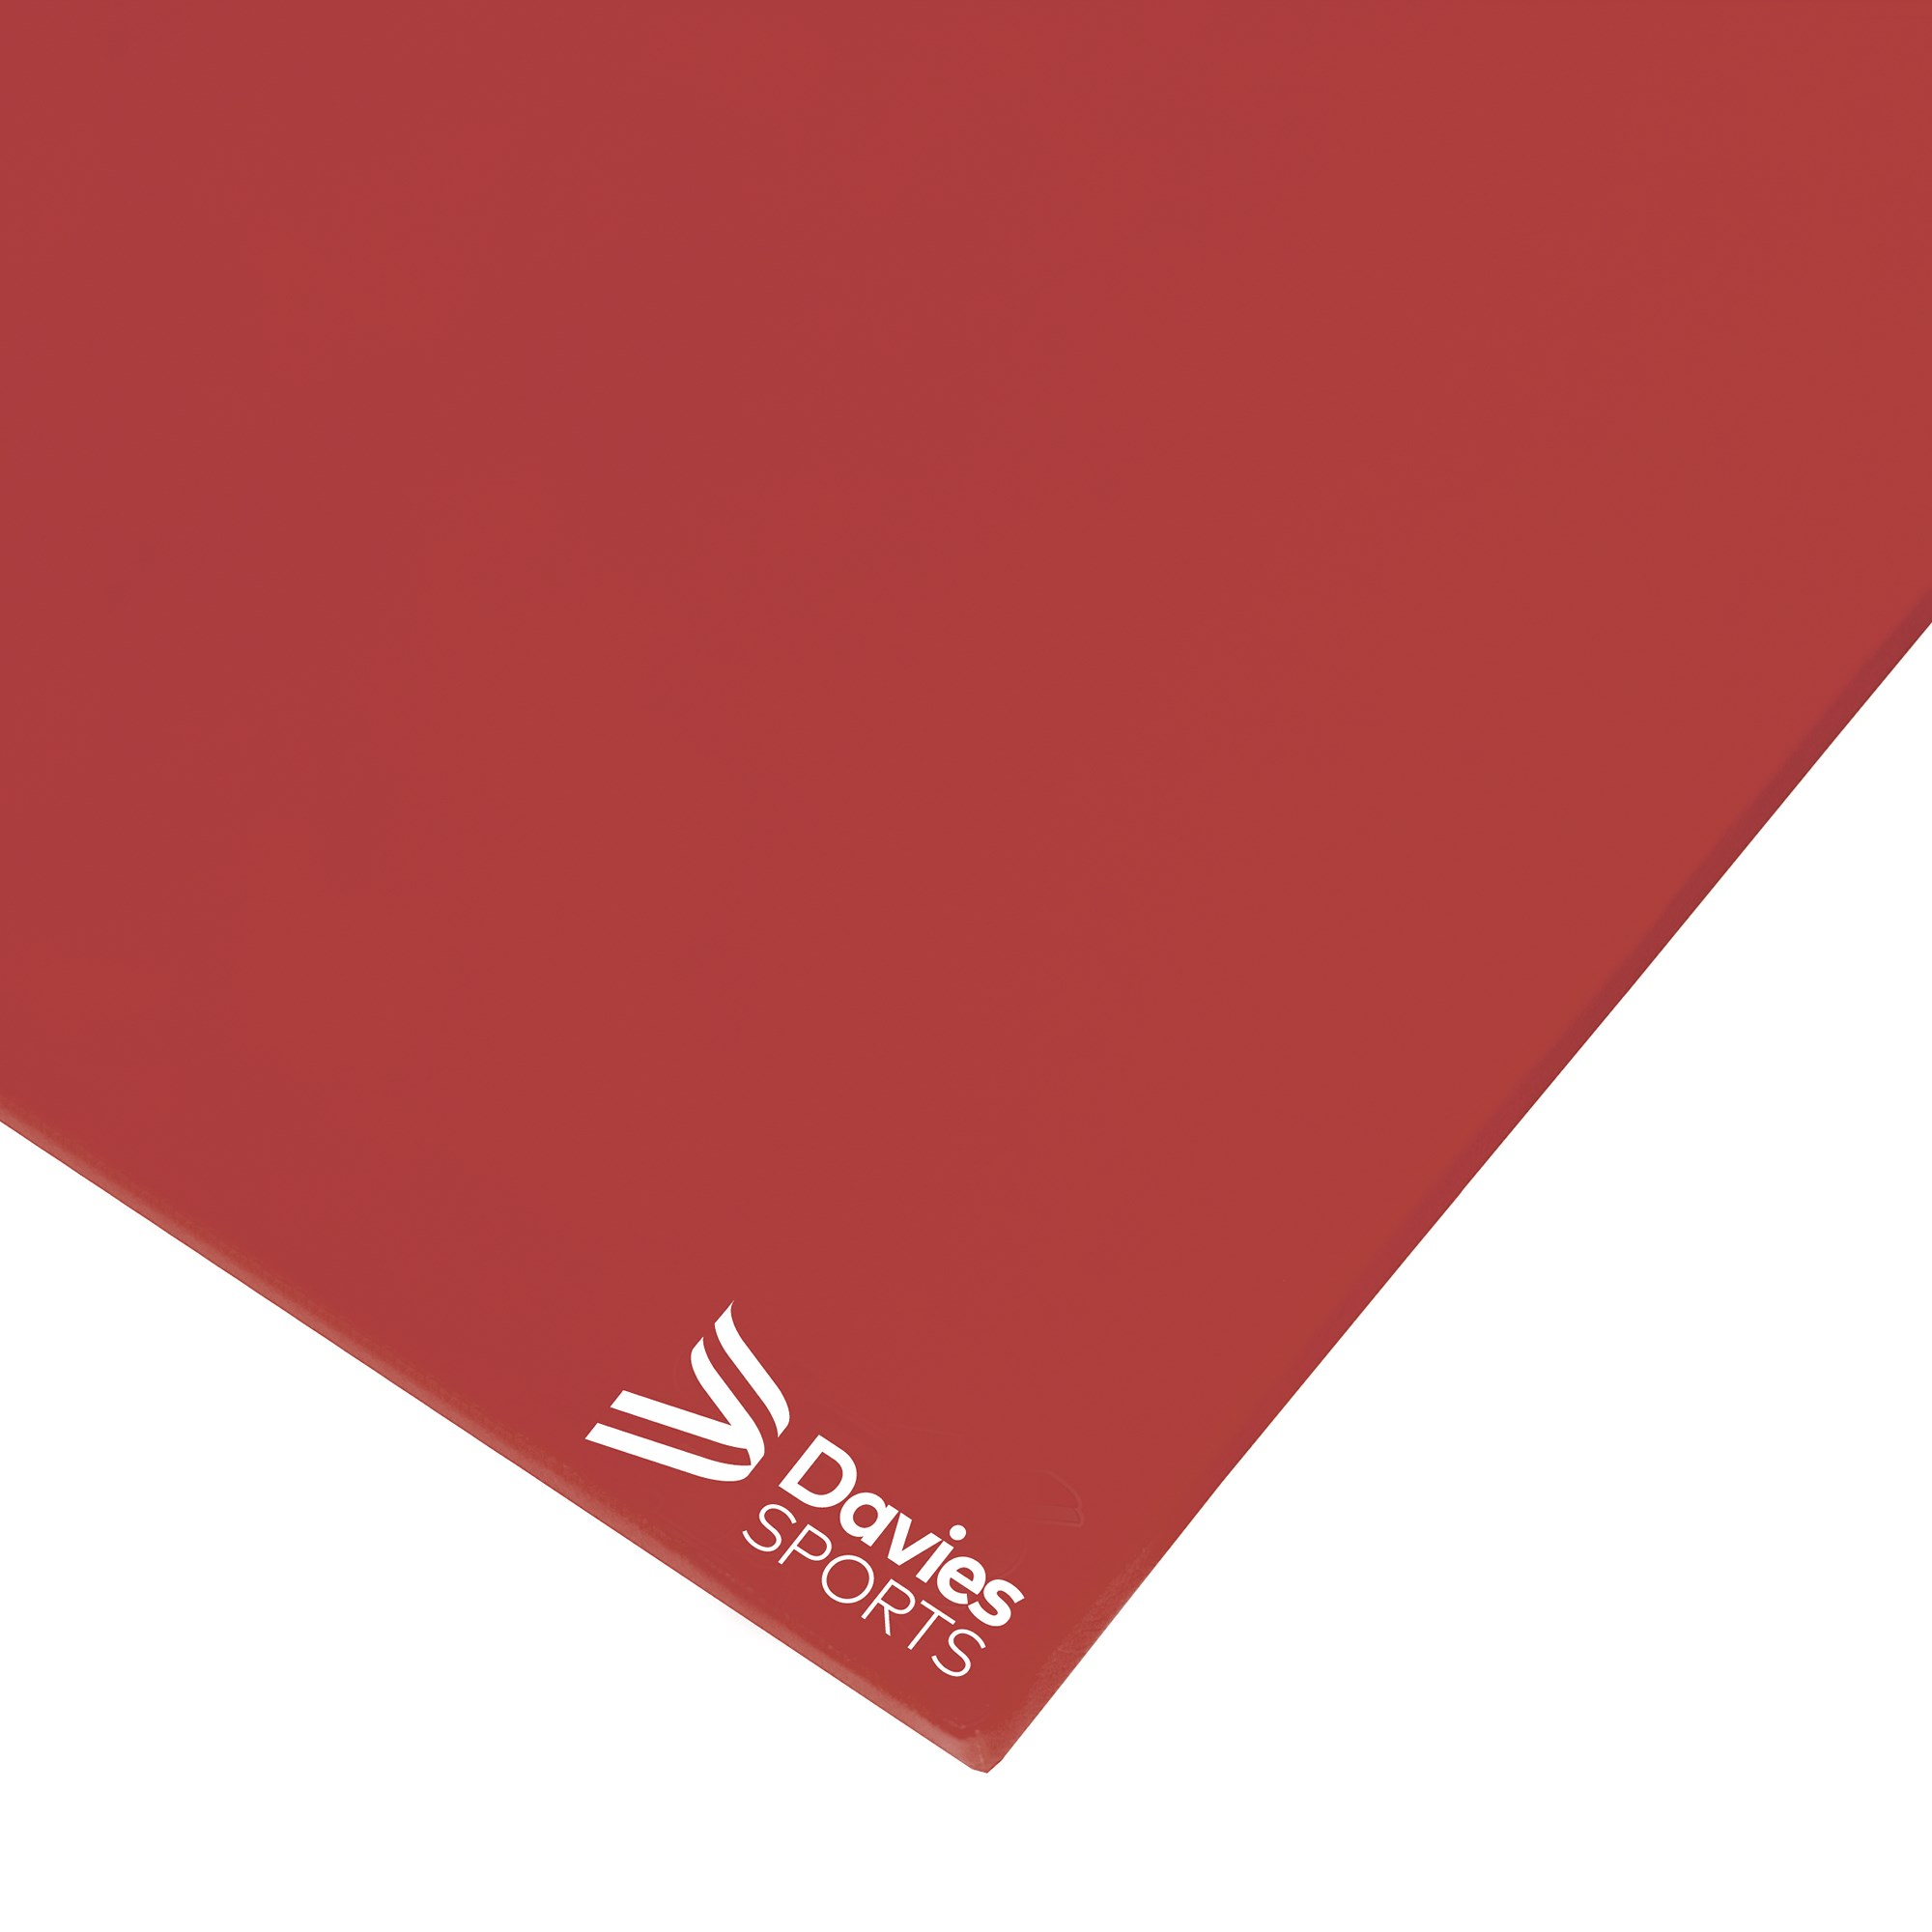 Davies Sports Medium Weight Gym Mat Rainbow Red - 1.83m x 1.22m x 32mm